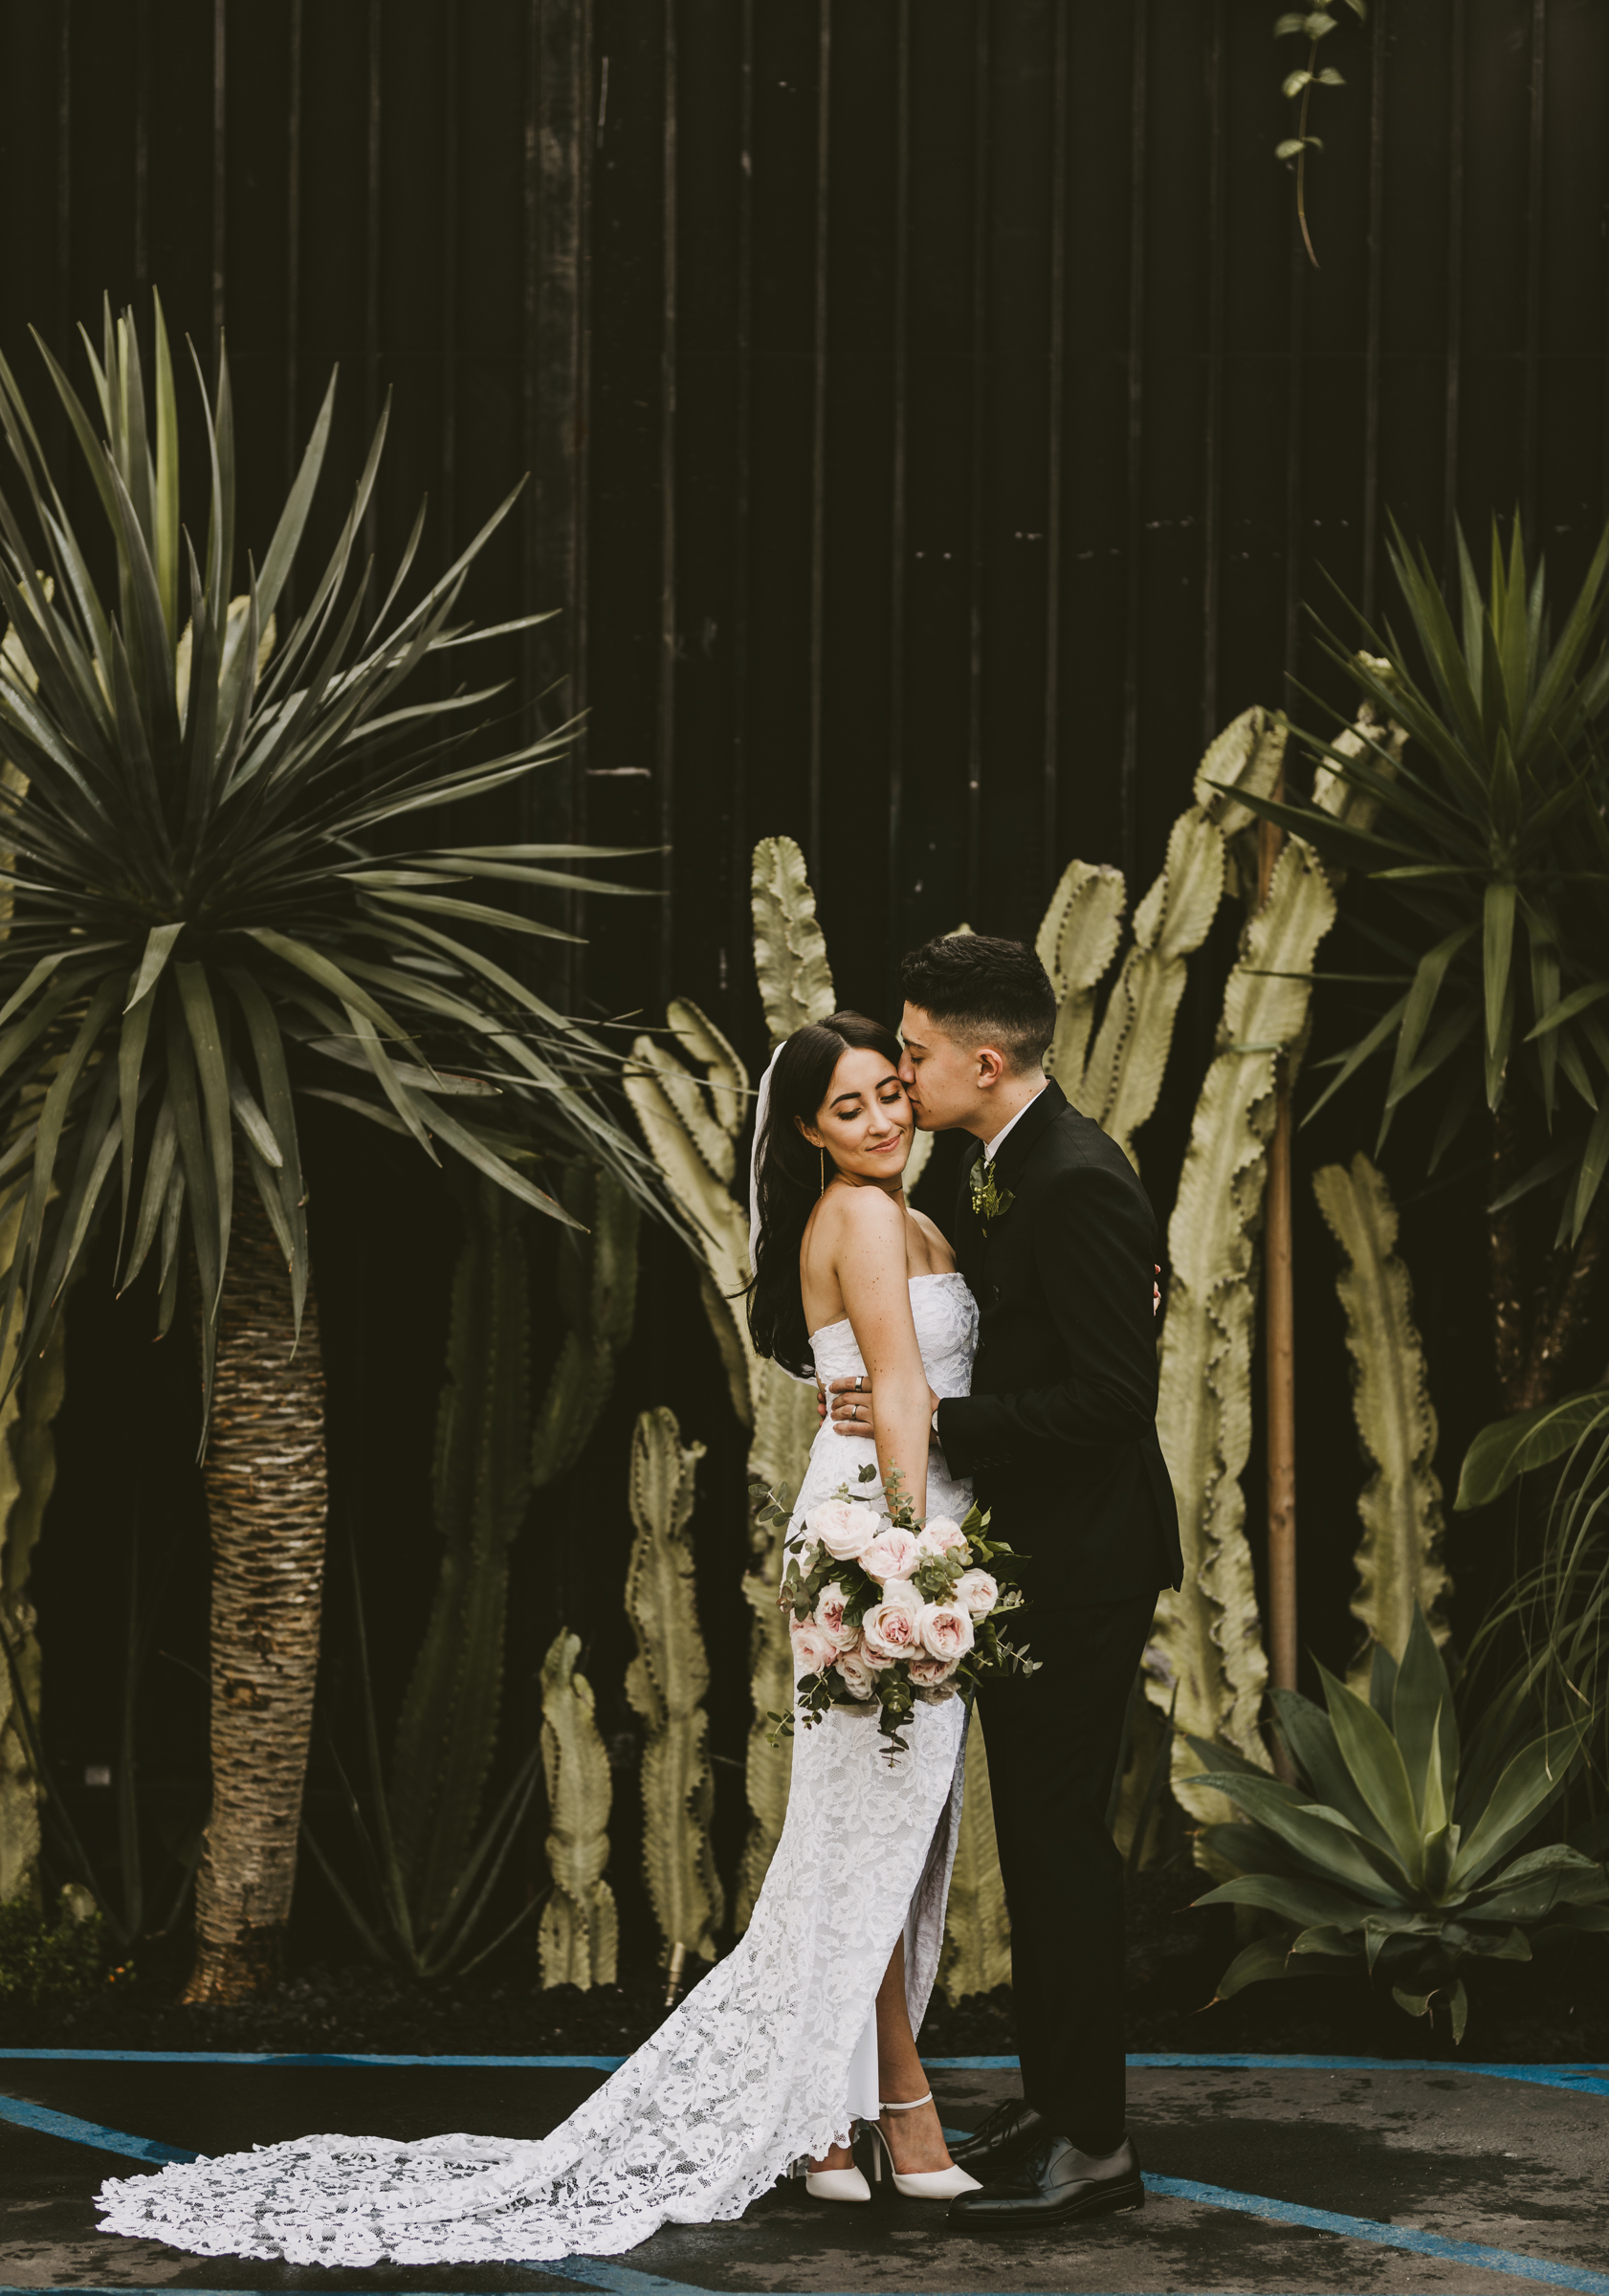 ©Isaiah + Taylor Photography - Millwick Wedding, Downtown Los Angeles-150.jpg